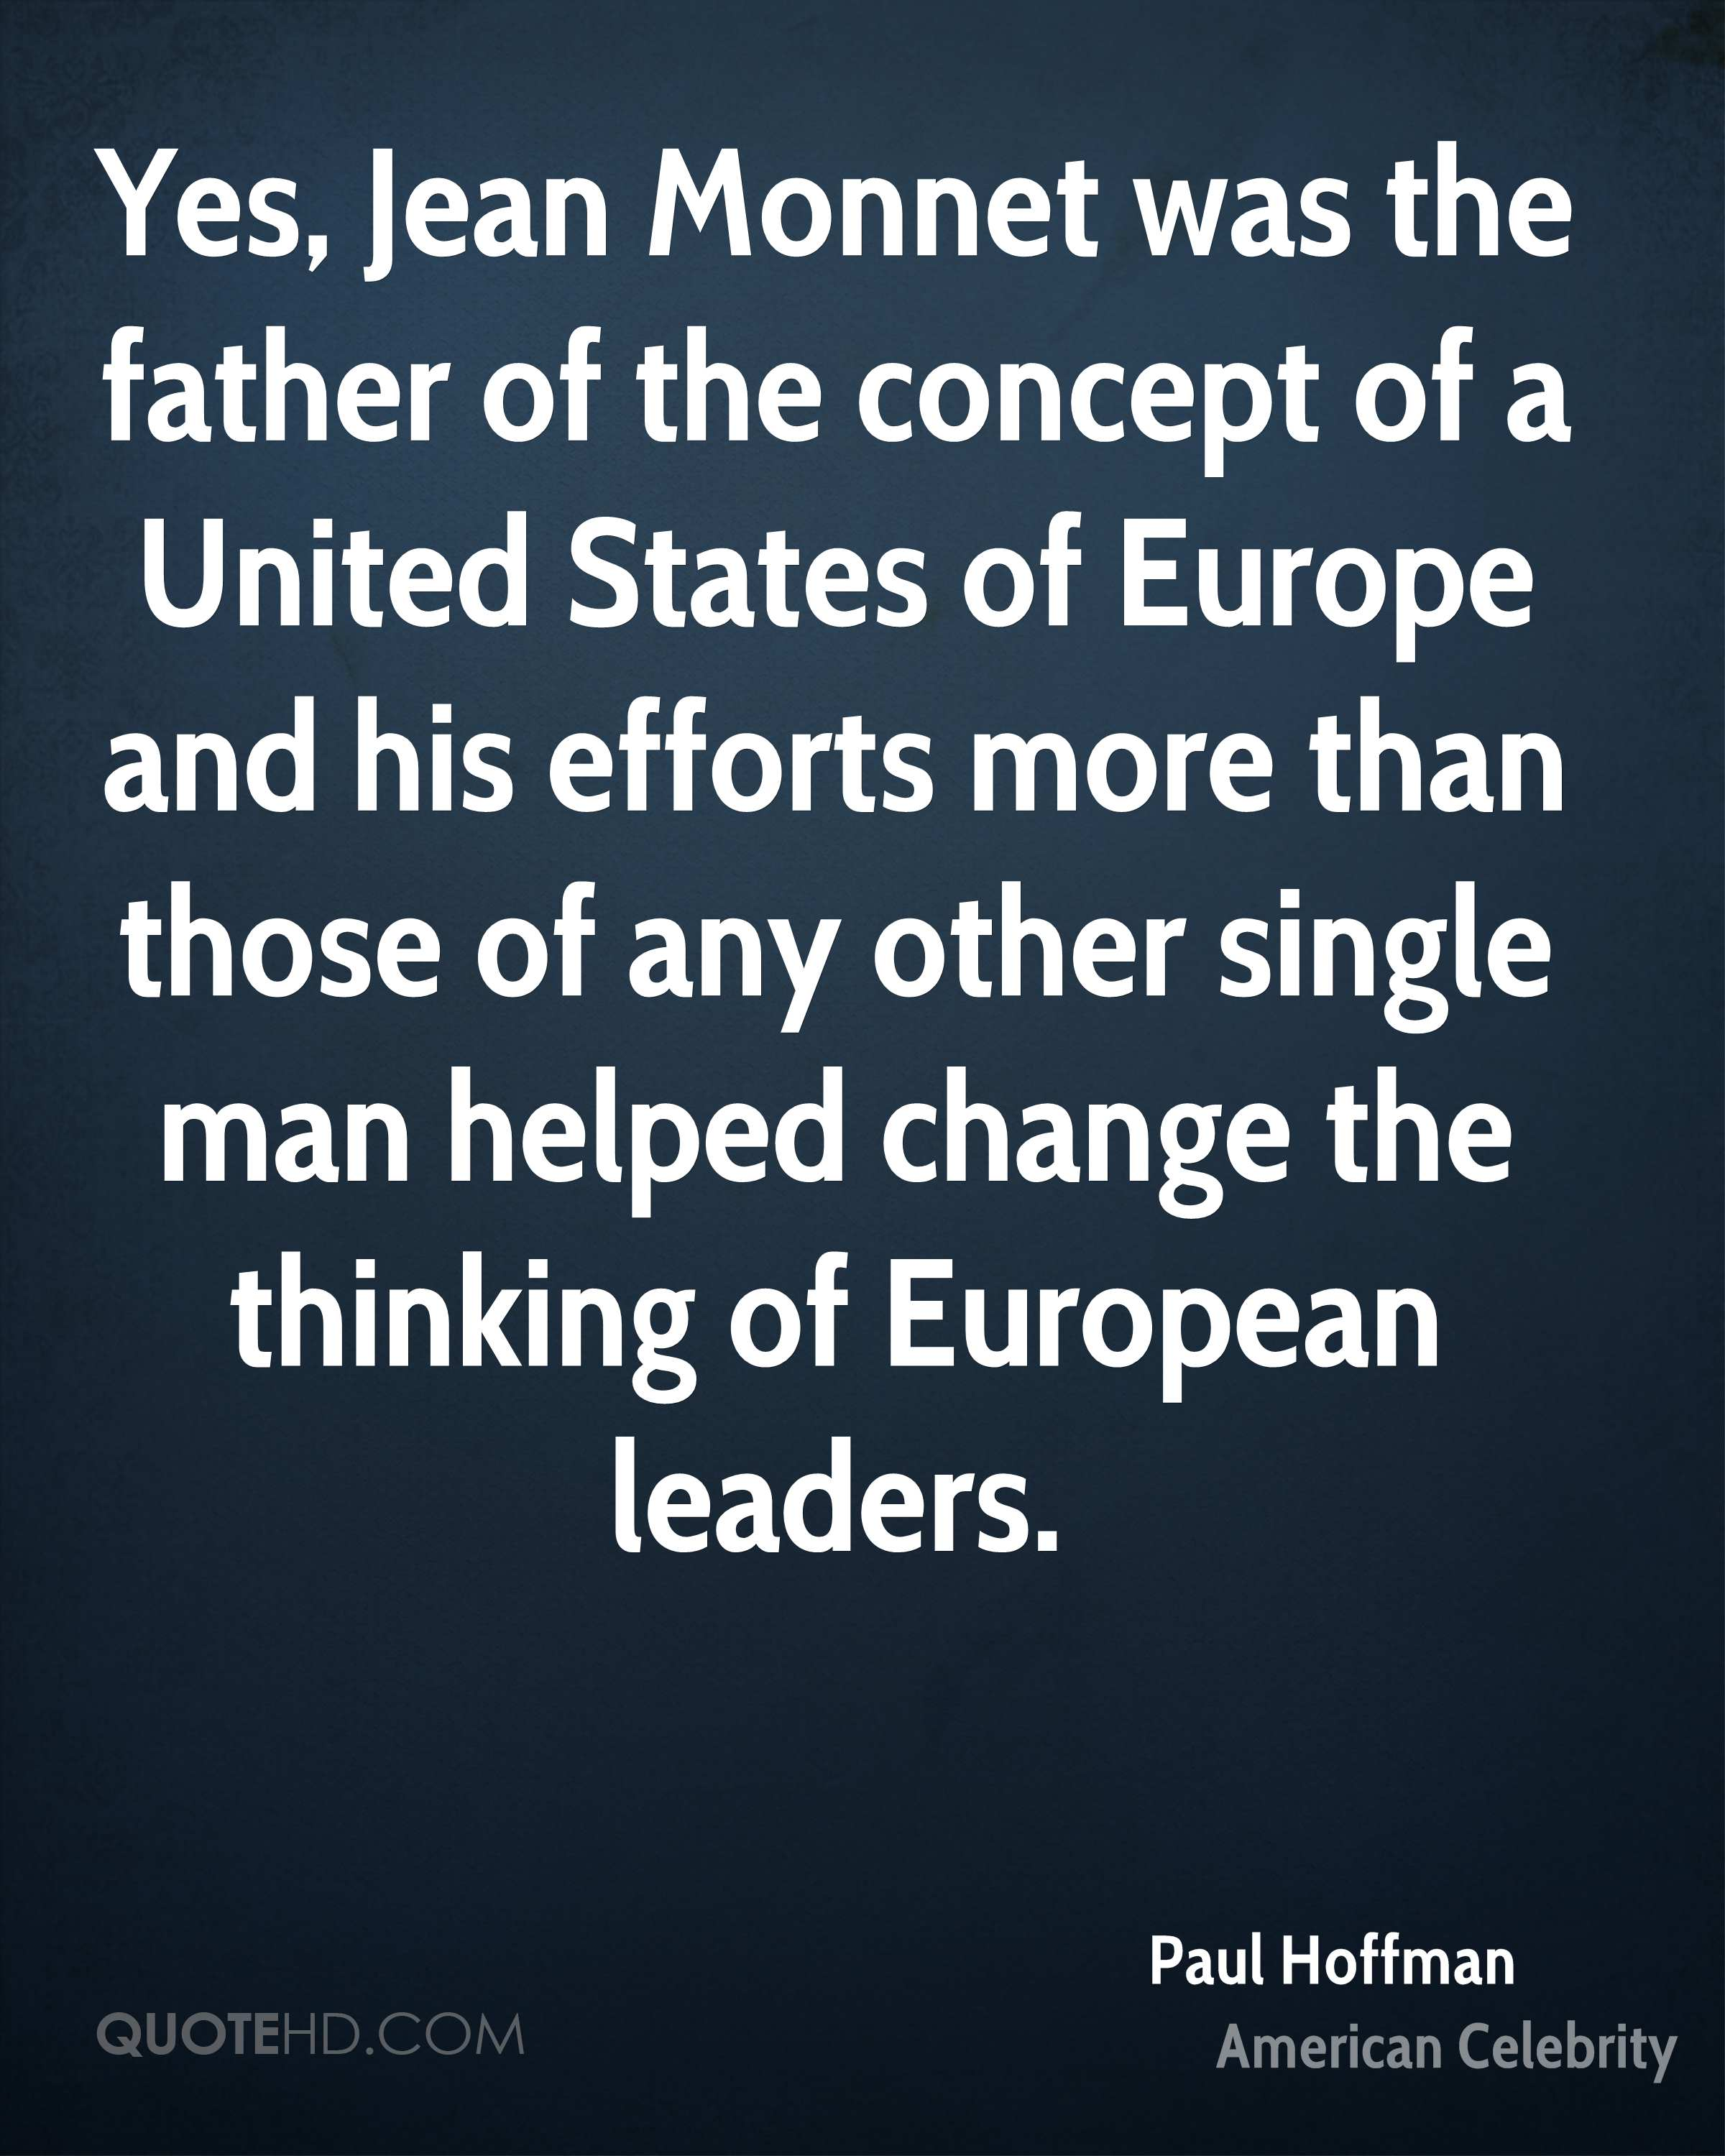 Yes, Jean Monnet was the father of the concept of a United States of Europe and his efforts more than those of any other single man helped change the thinking of European leaders.